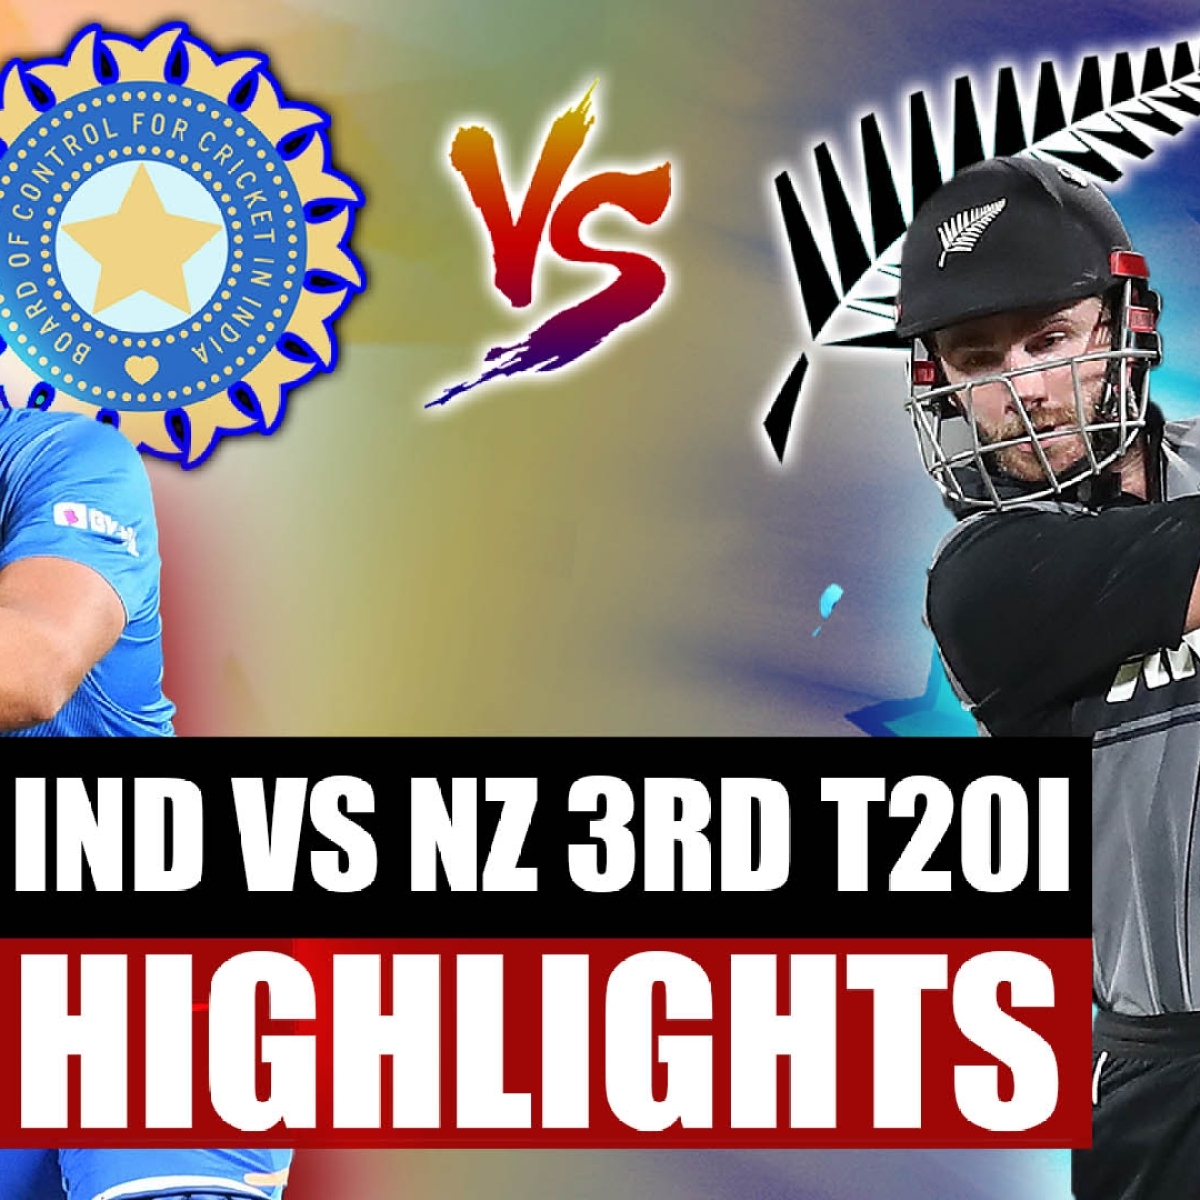 India vs New Zealand 3rd T20I Highlights: Rohit Sharma slams 2 sixes in super over to seal series